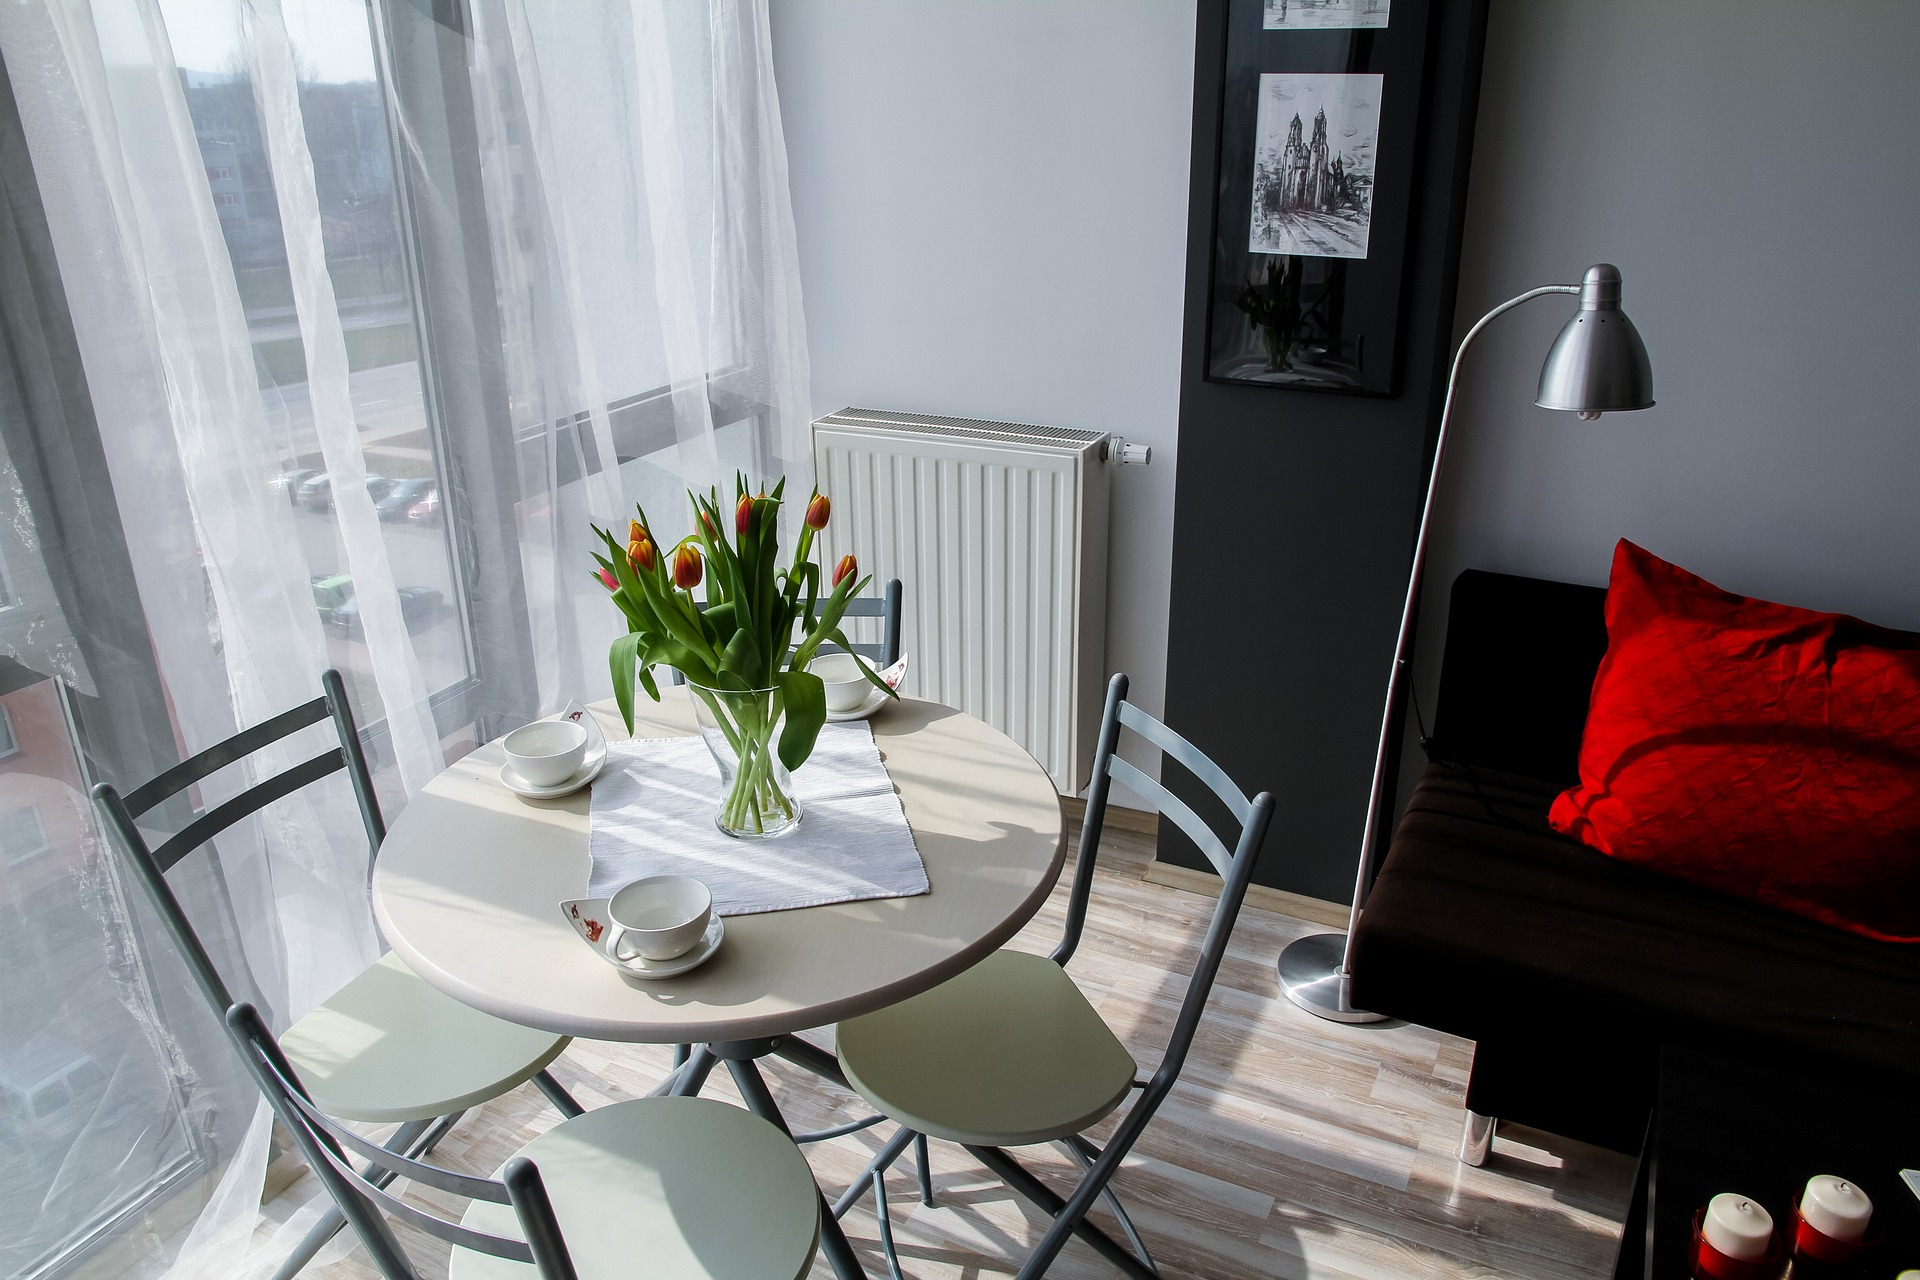 Micro Apartments: The Growing Trend in City Living